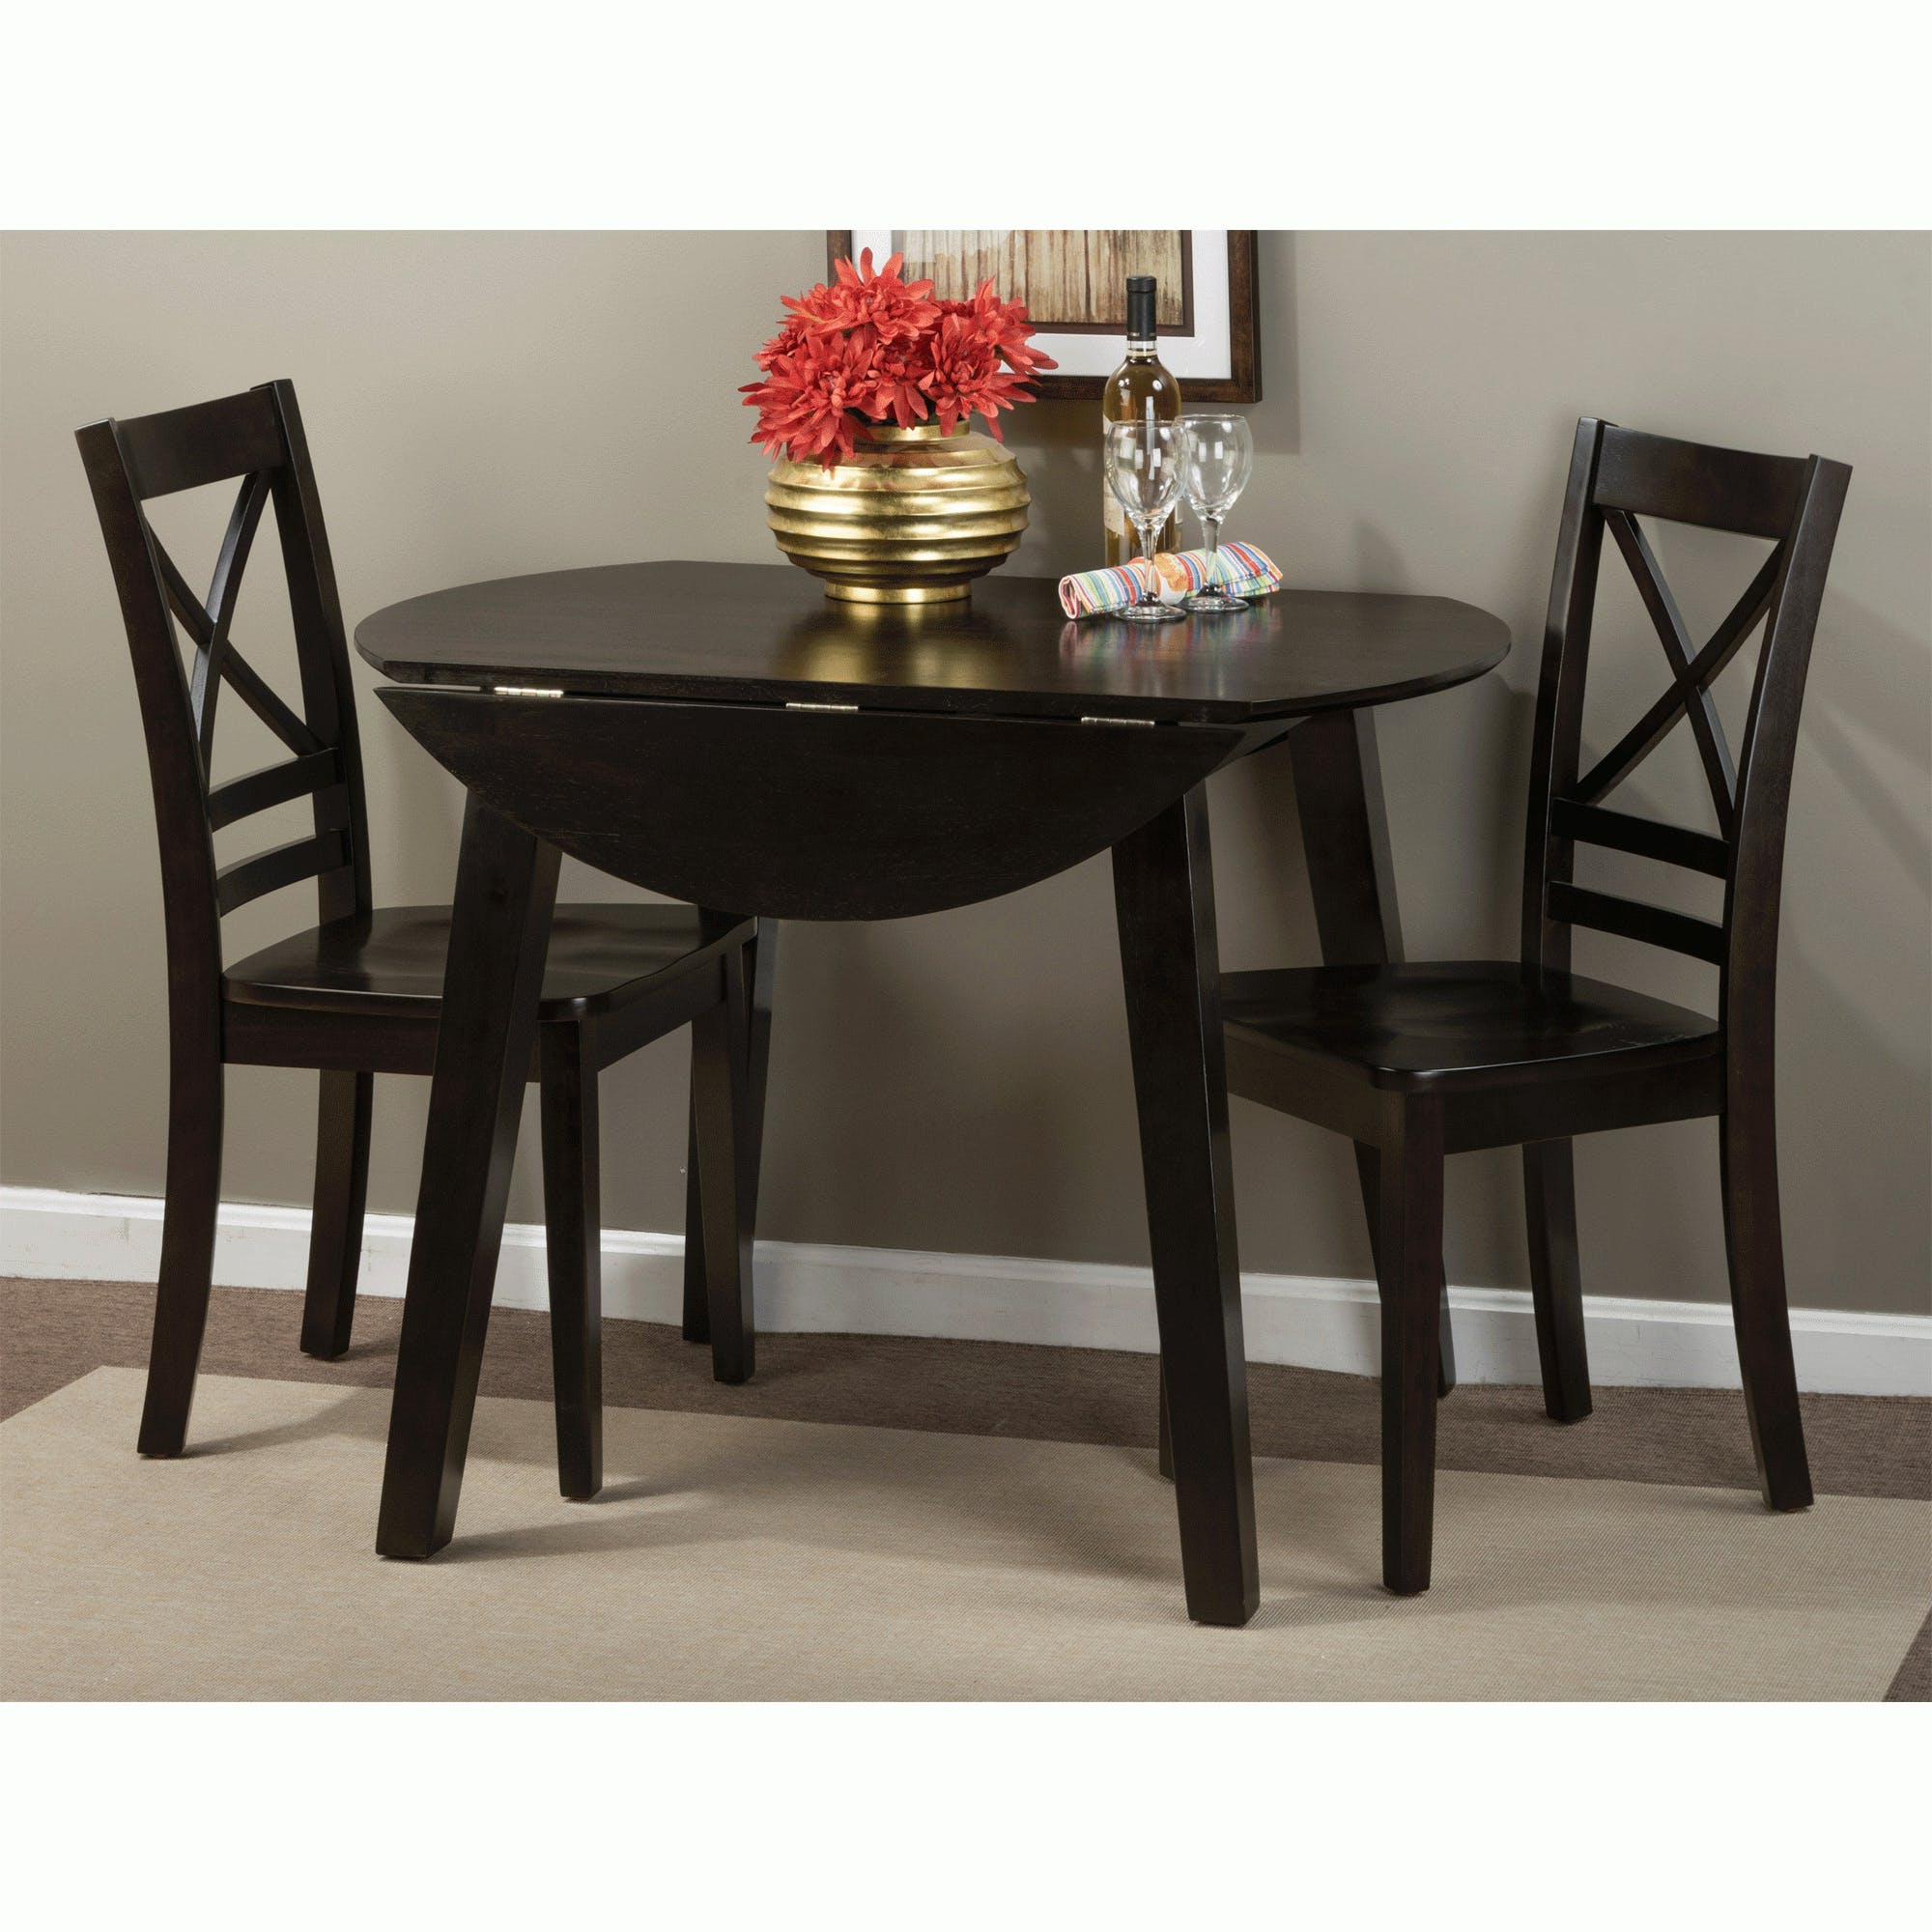 3 Piece Dining Sets Pertaining To Widely Used Simplicity Espresso 3 Piece Dining Set (Drop Leaf Table With 2 Side (View 24 of 25)